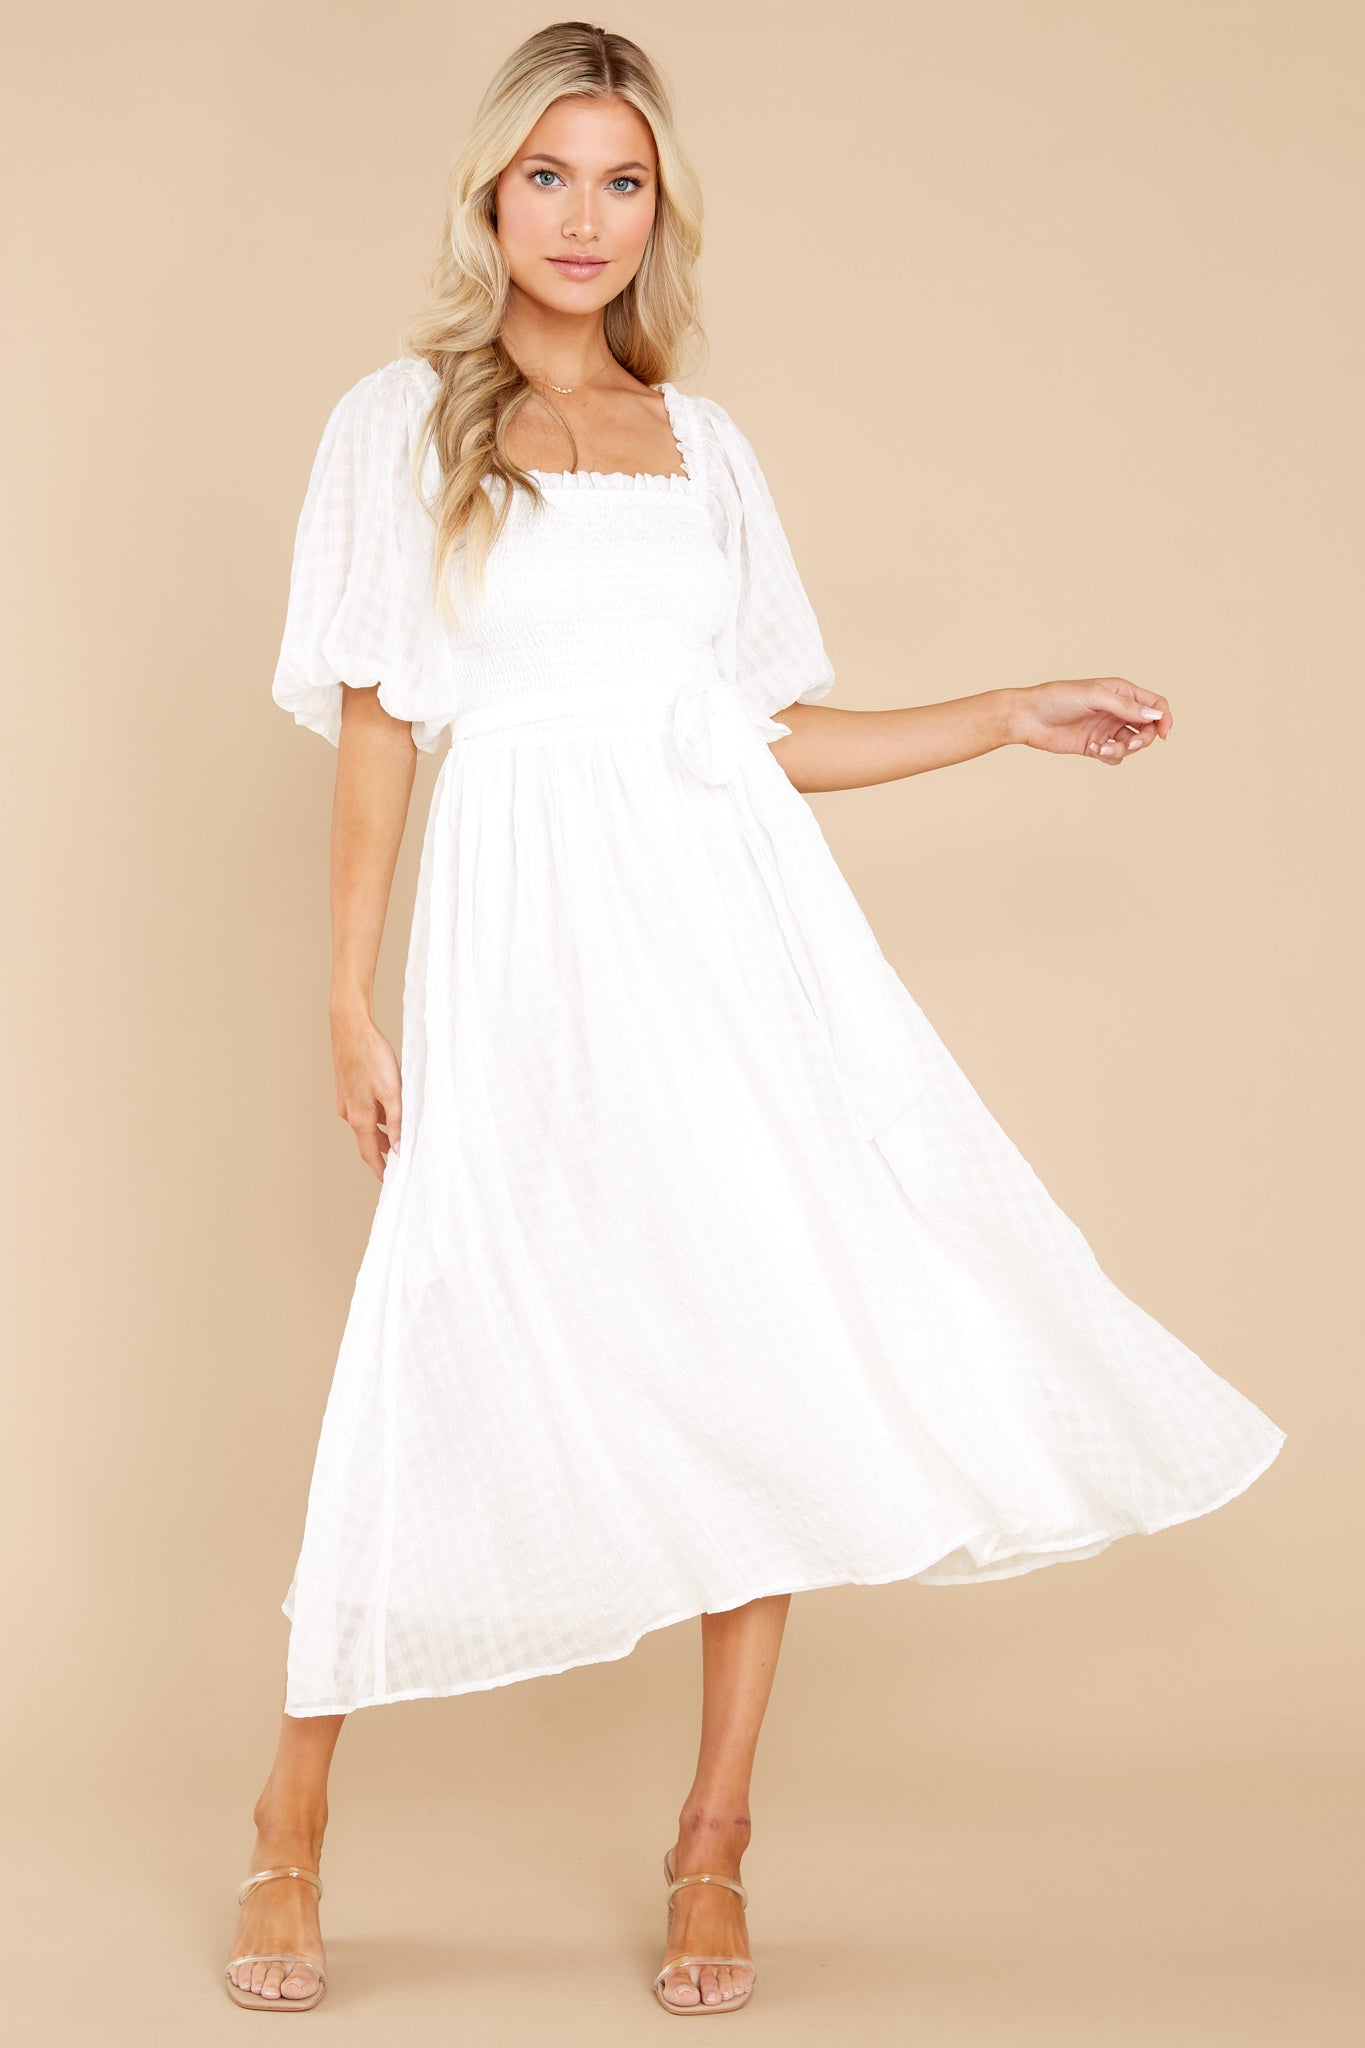 70s Clothes | Hippie Clothes & Outfits Never Ending Love Story White Midi Dress $48.00 AT vintagedancer.com